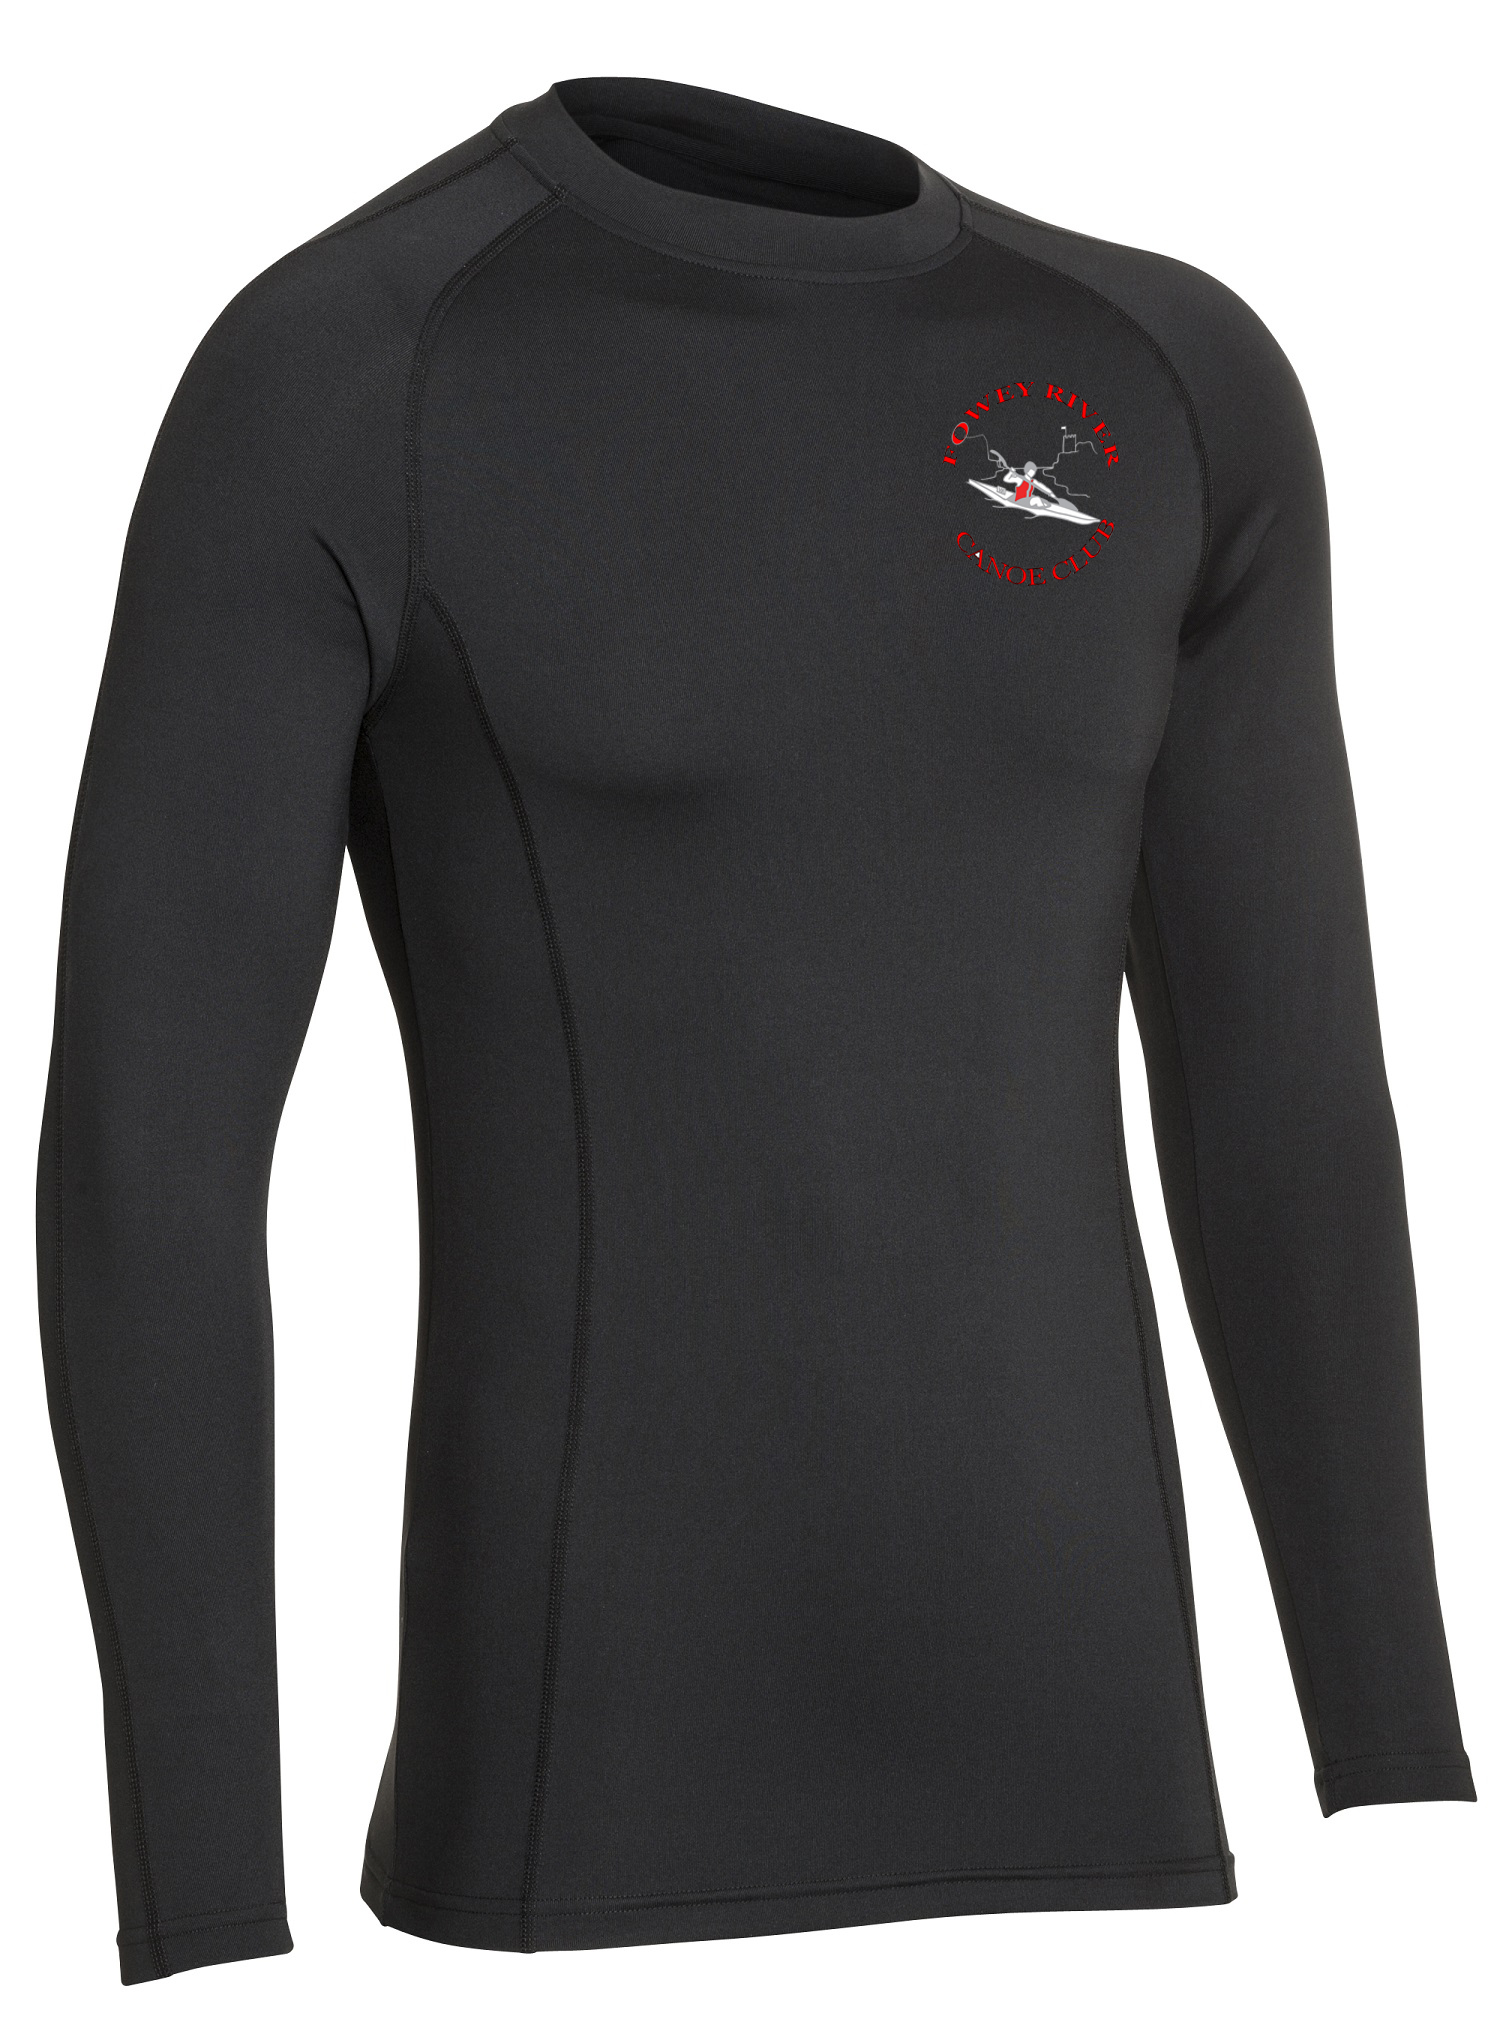 Fowey River Canoe Club Long Sleeved Base Layer